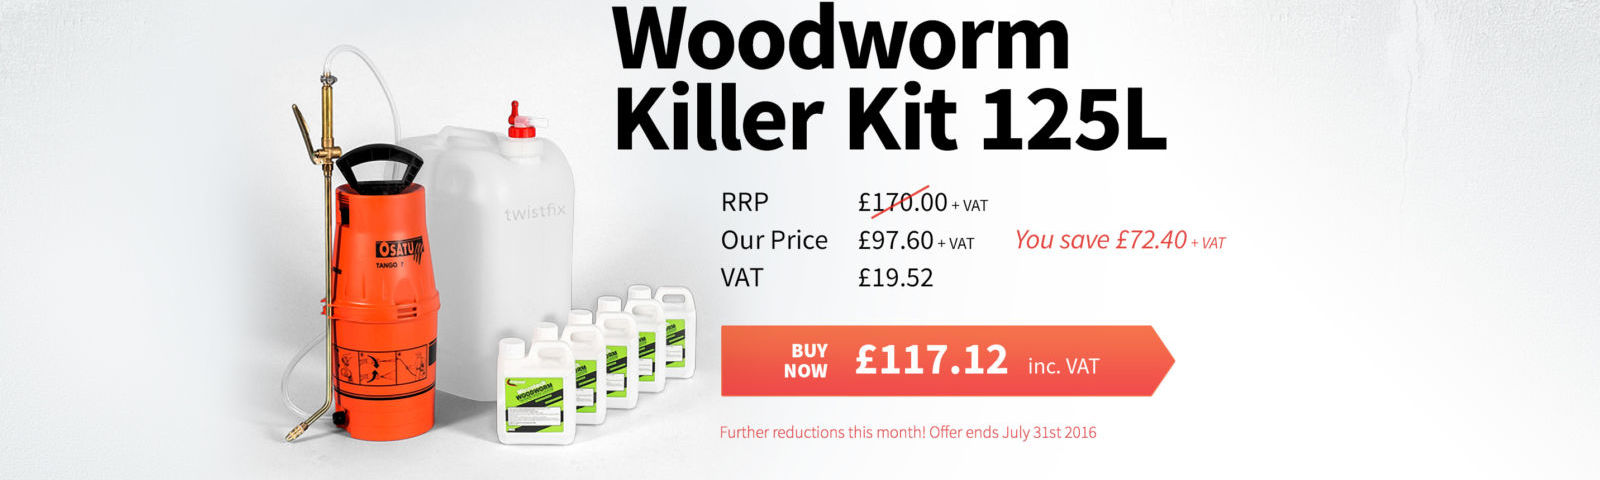 2016 July Woodworm Killer Kit 125L